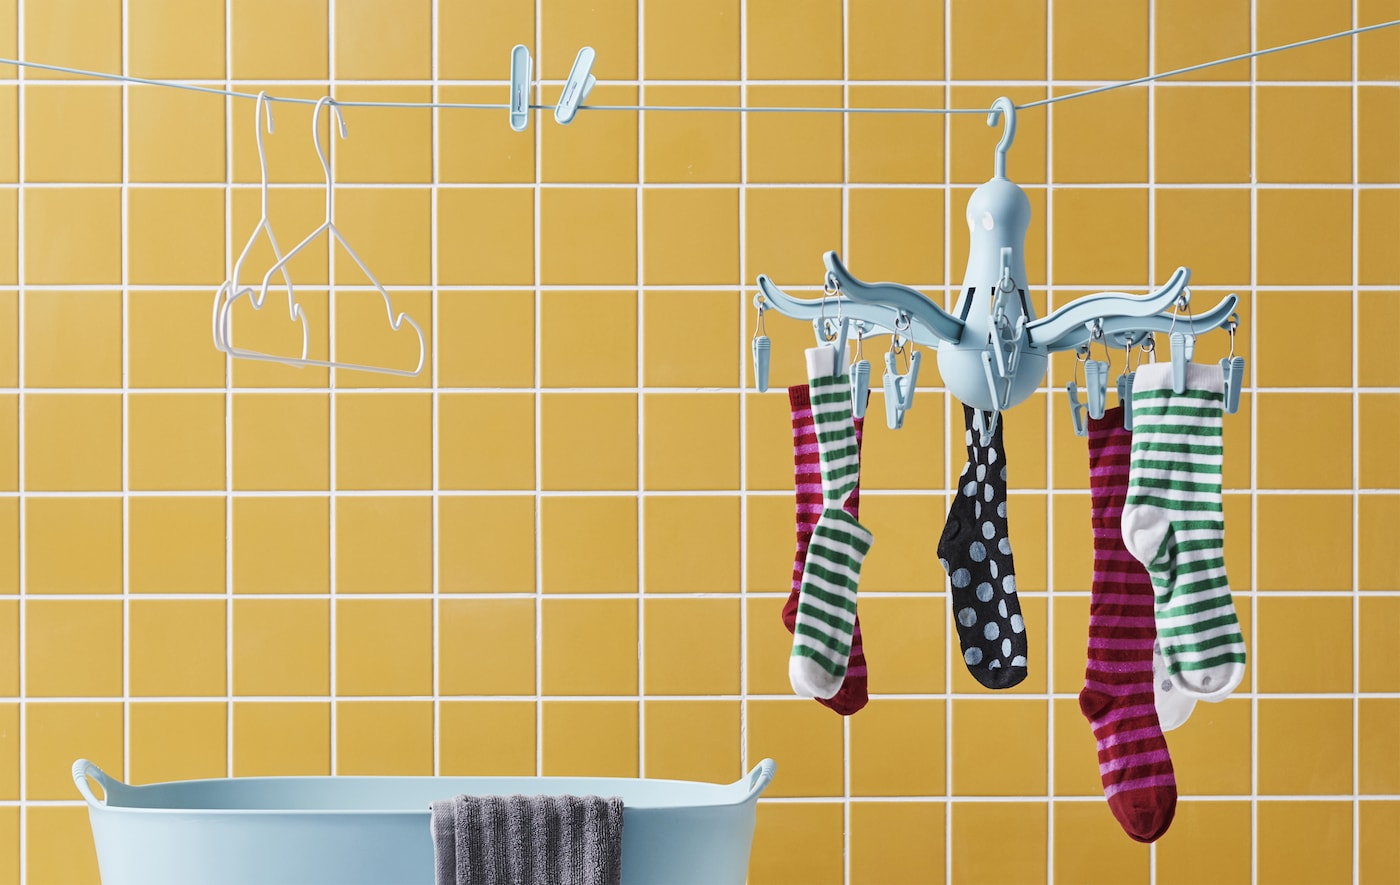 Socks on a turquoise IKEA PRESSA hanging dryer hanging on a clothes line against a wall of yellow tiles.